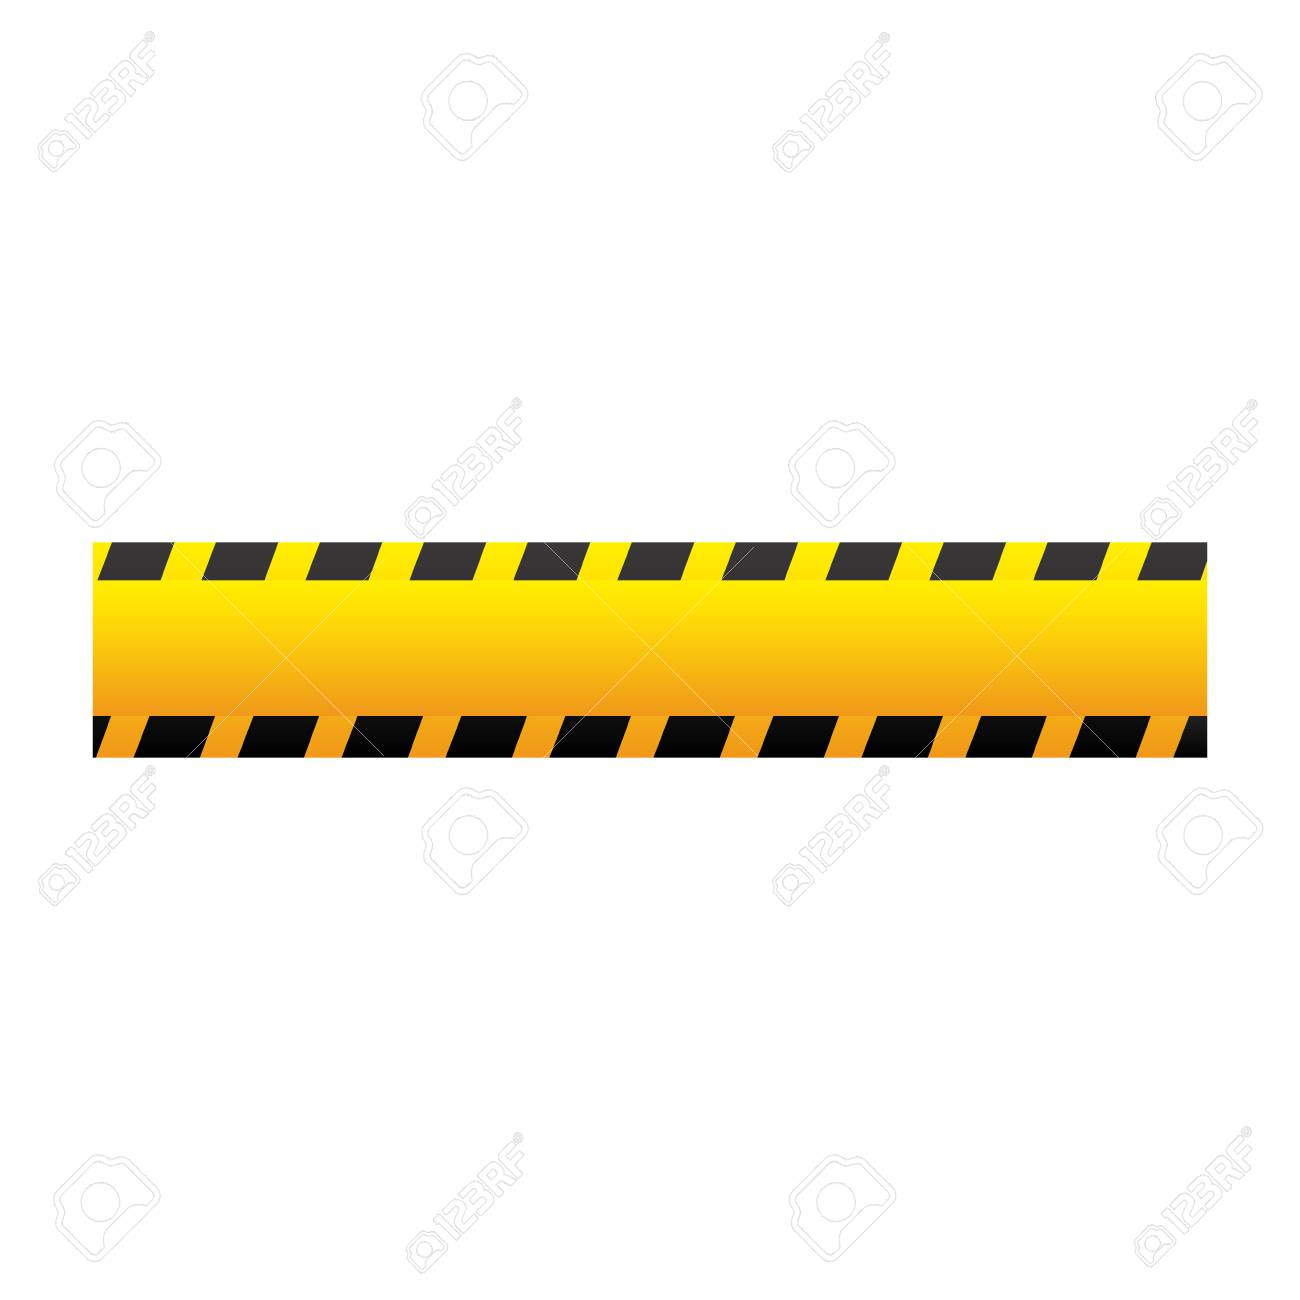 yellow caution tape icon vector illustraction design image royalty rh 123rf com caution tape vector free Police Line Tape